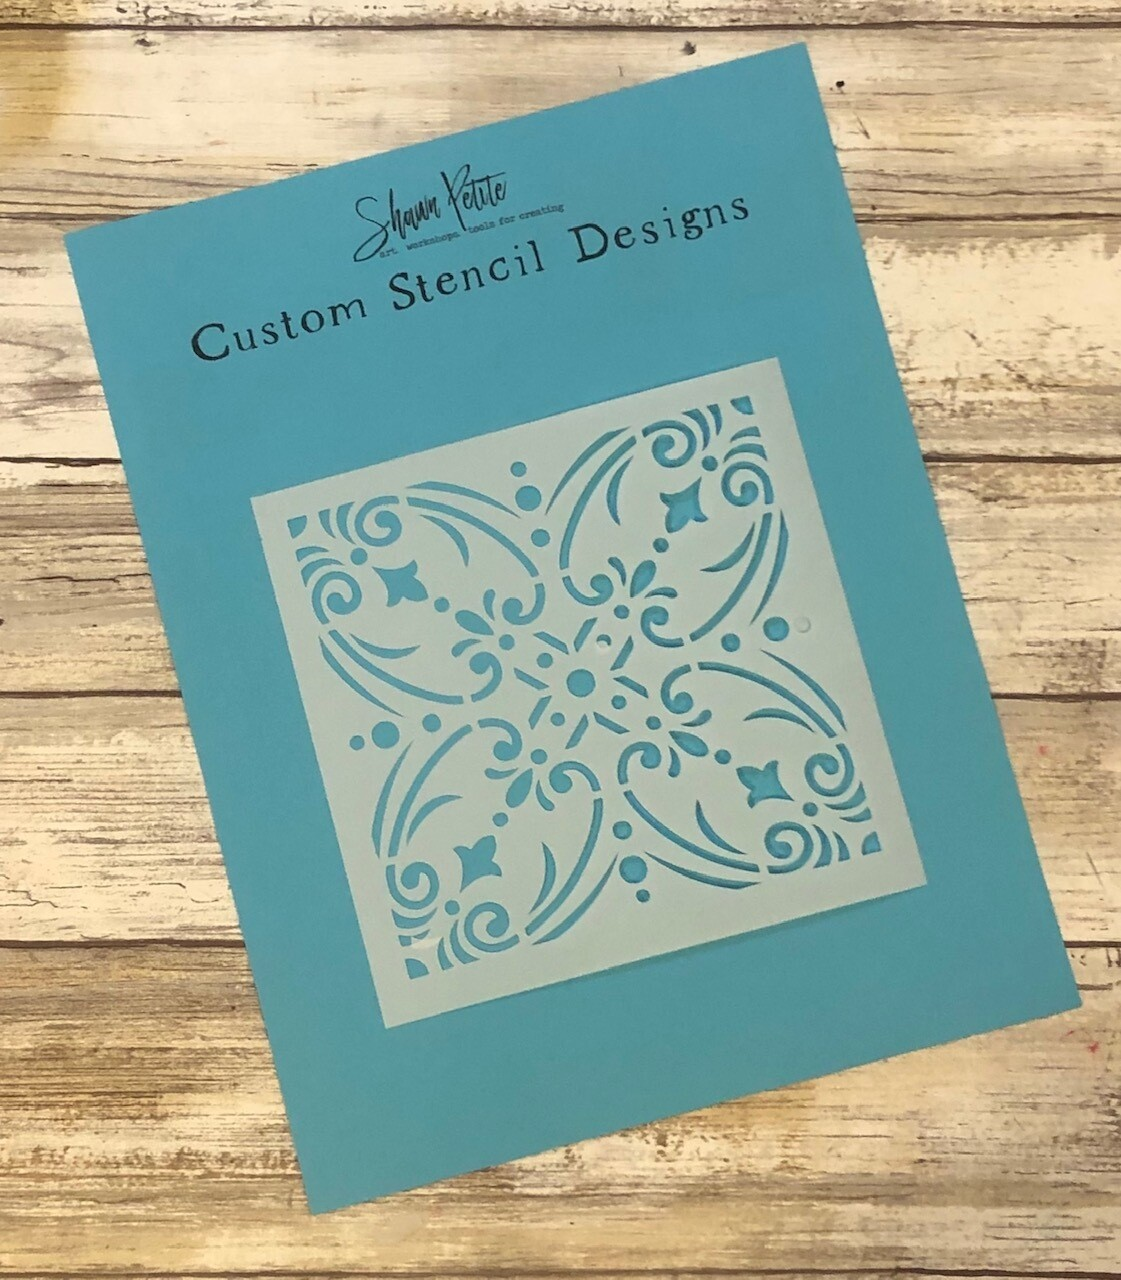 Moroccan Tiles 1 6x6 clearance stencil